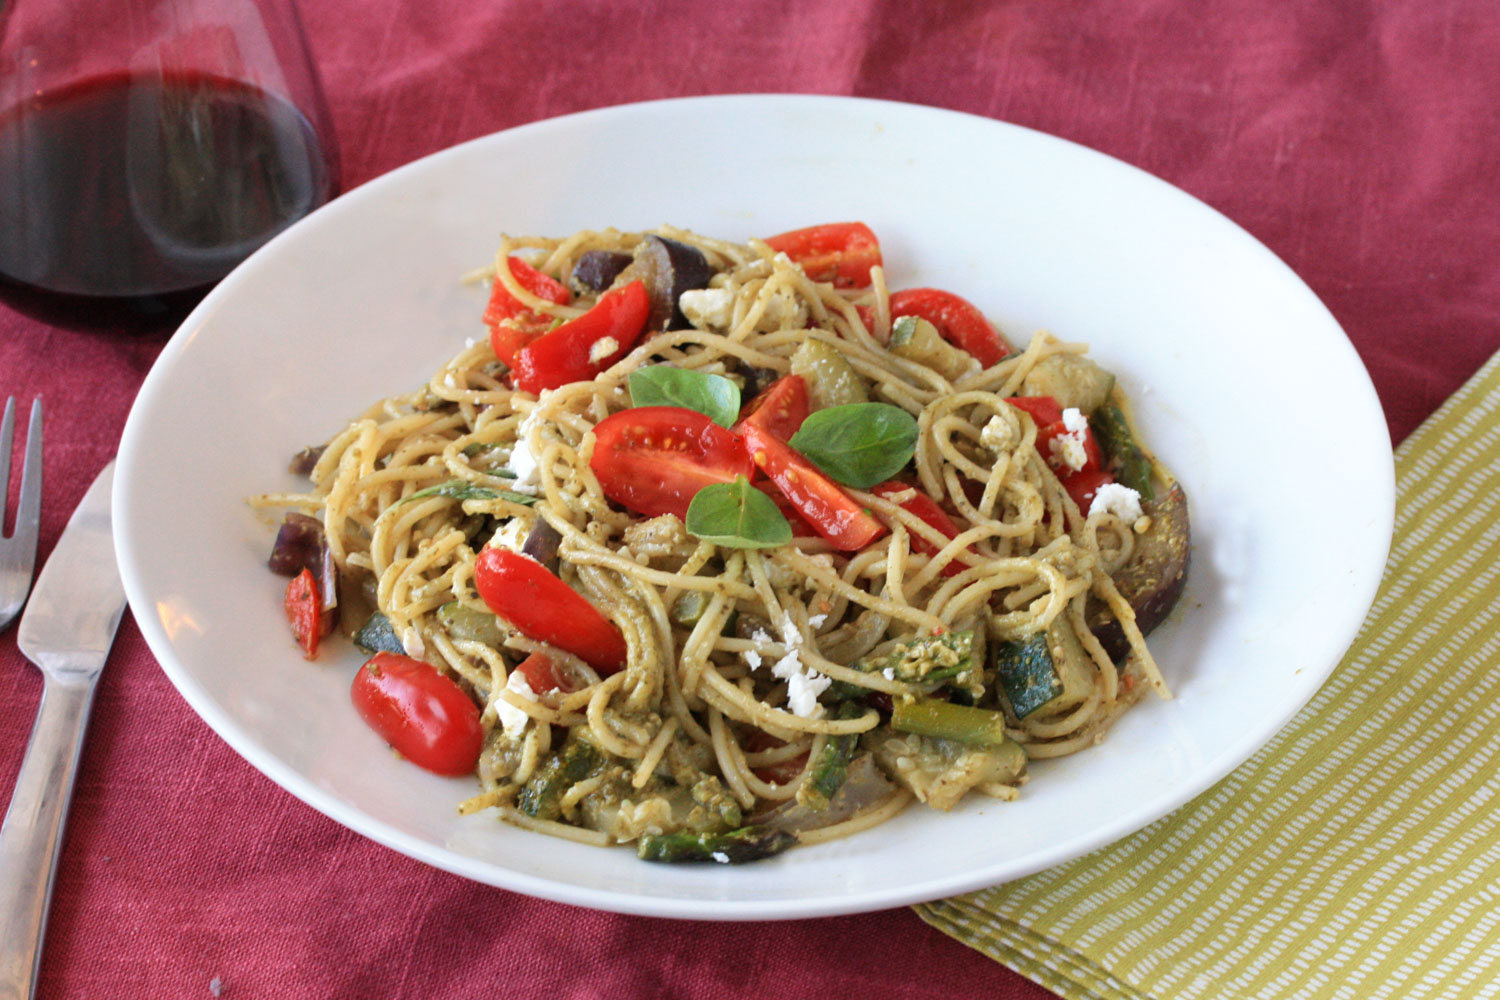 Roast vegetable spaghetti with basil pesto and cherry tomatoes